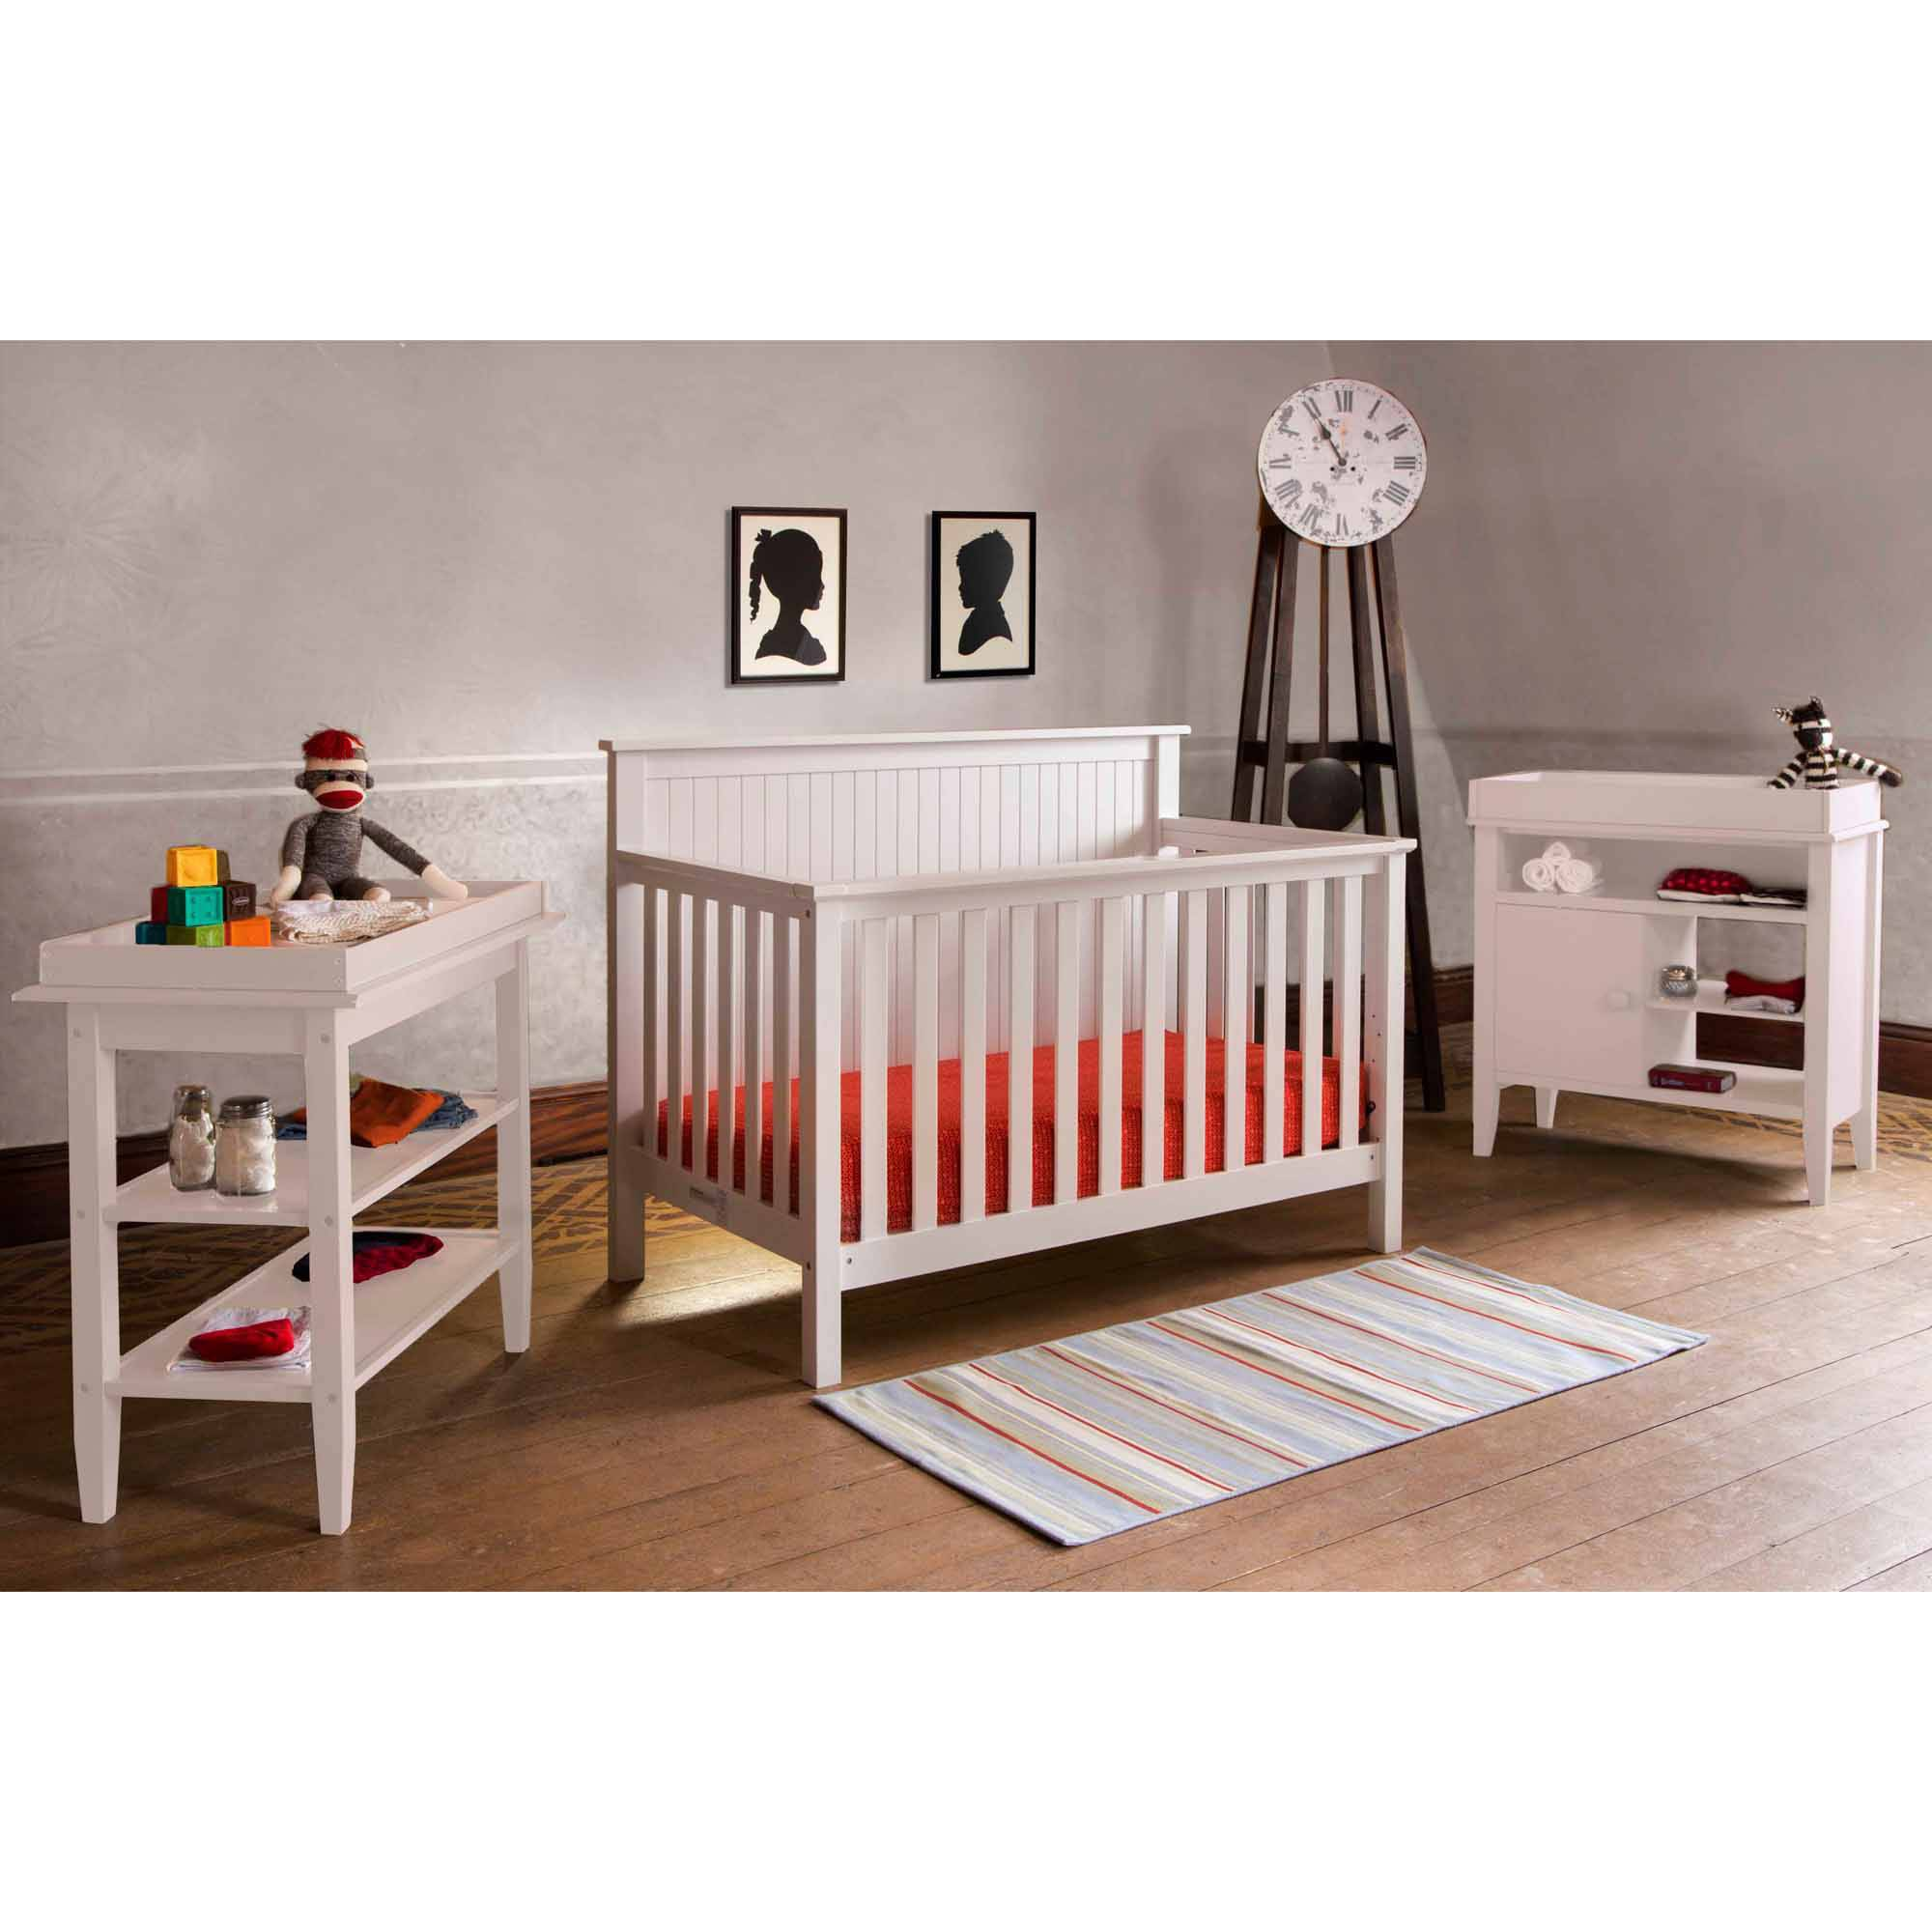 Lolly & Me, Americana Collection Crib, White